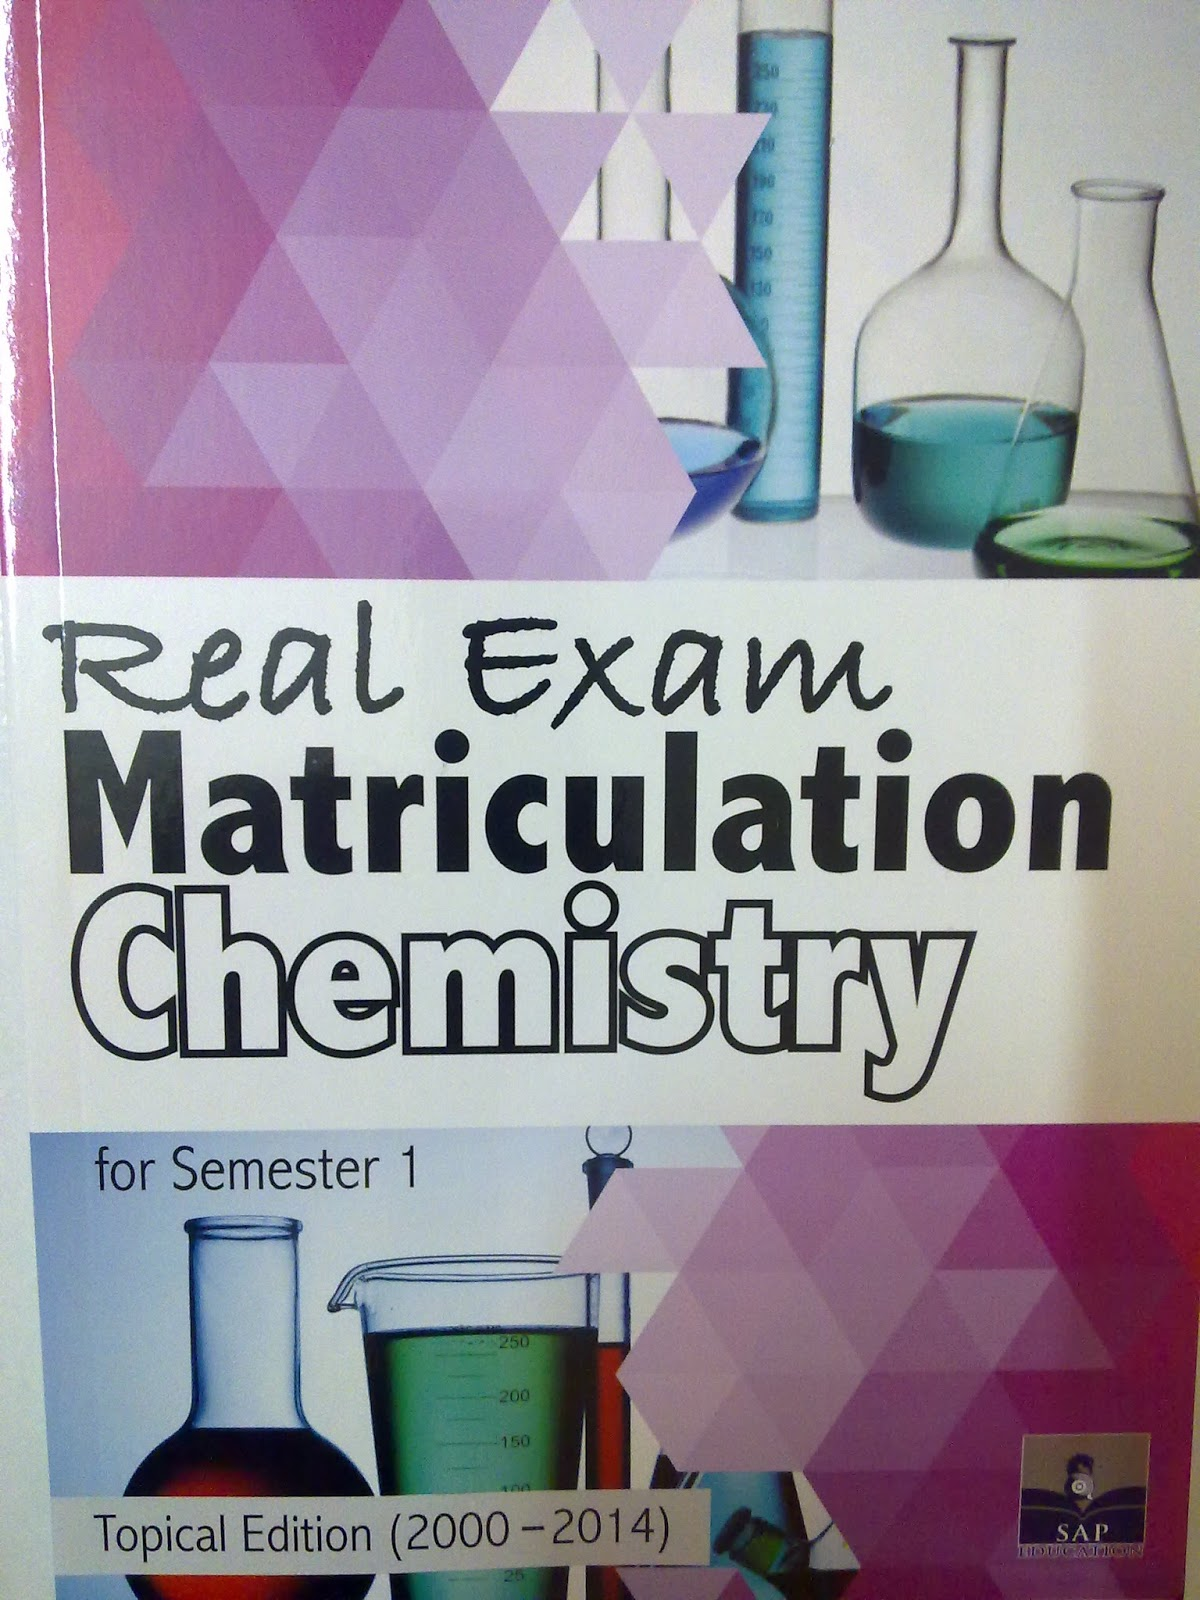 lookchemistry real exam matriculation chemistry for semester 1 topical edition 2001 2015 this module consists of 15 years cloned matriculation past year examination